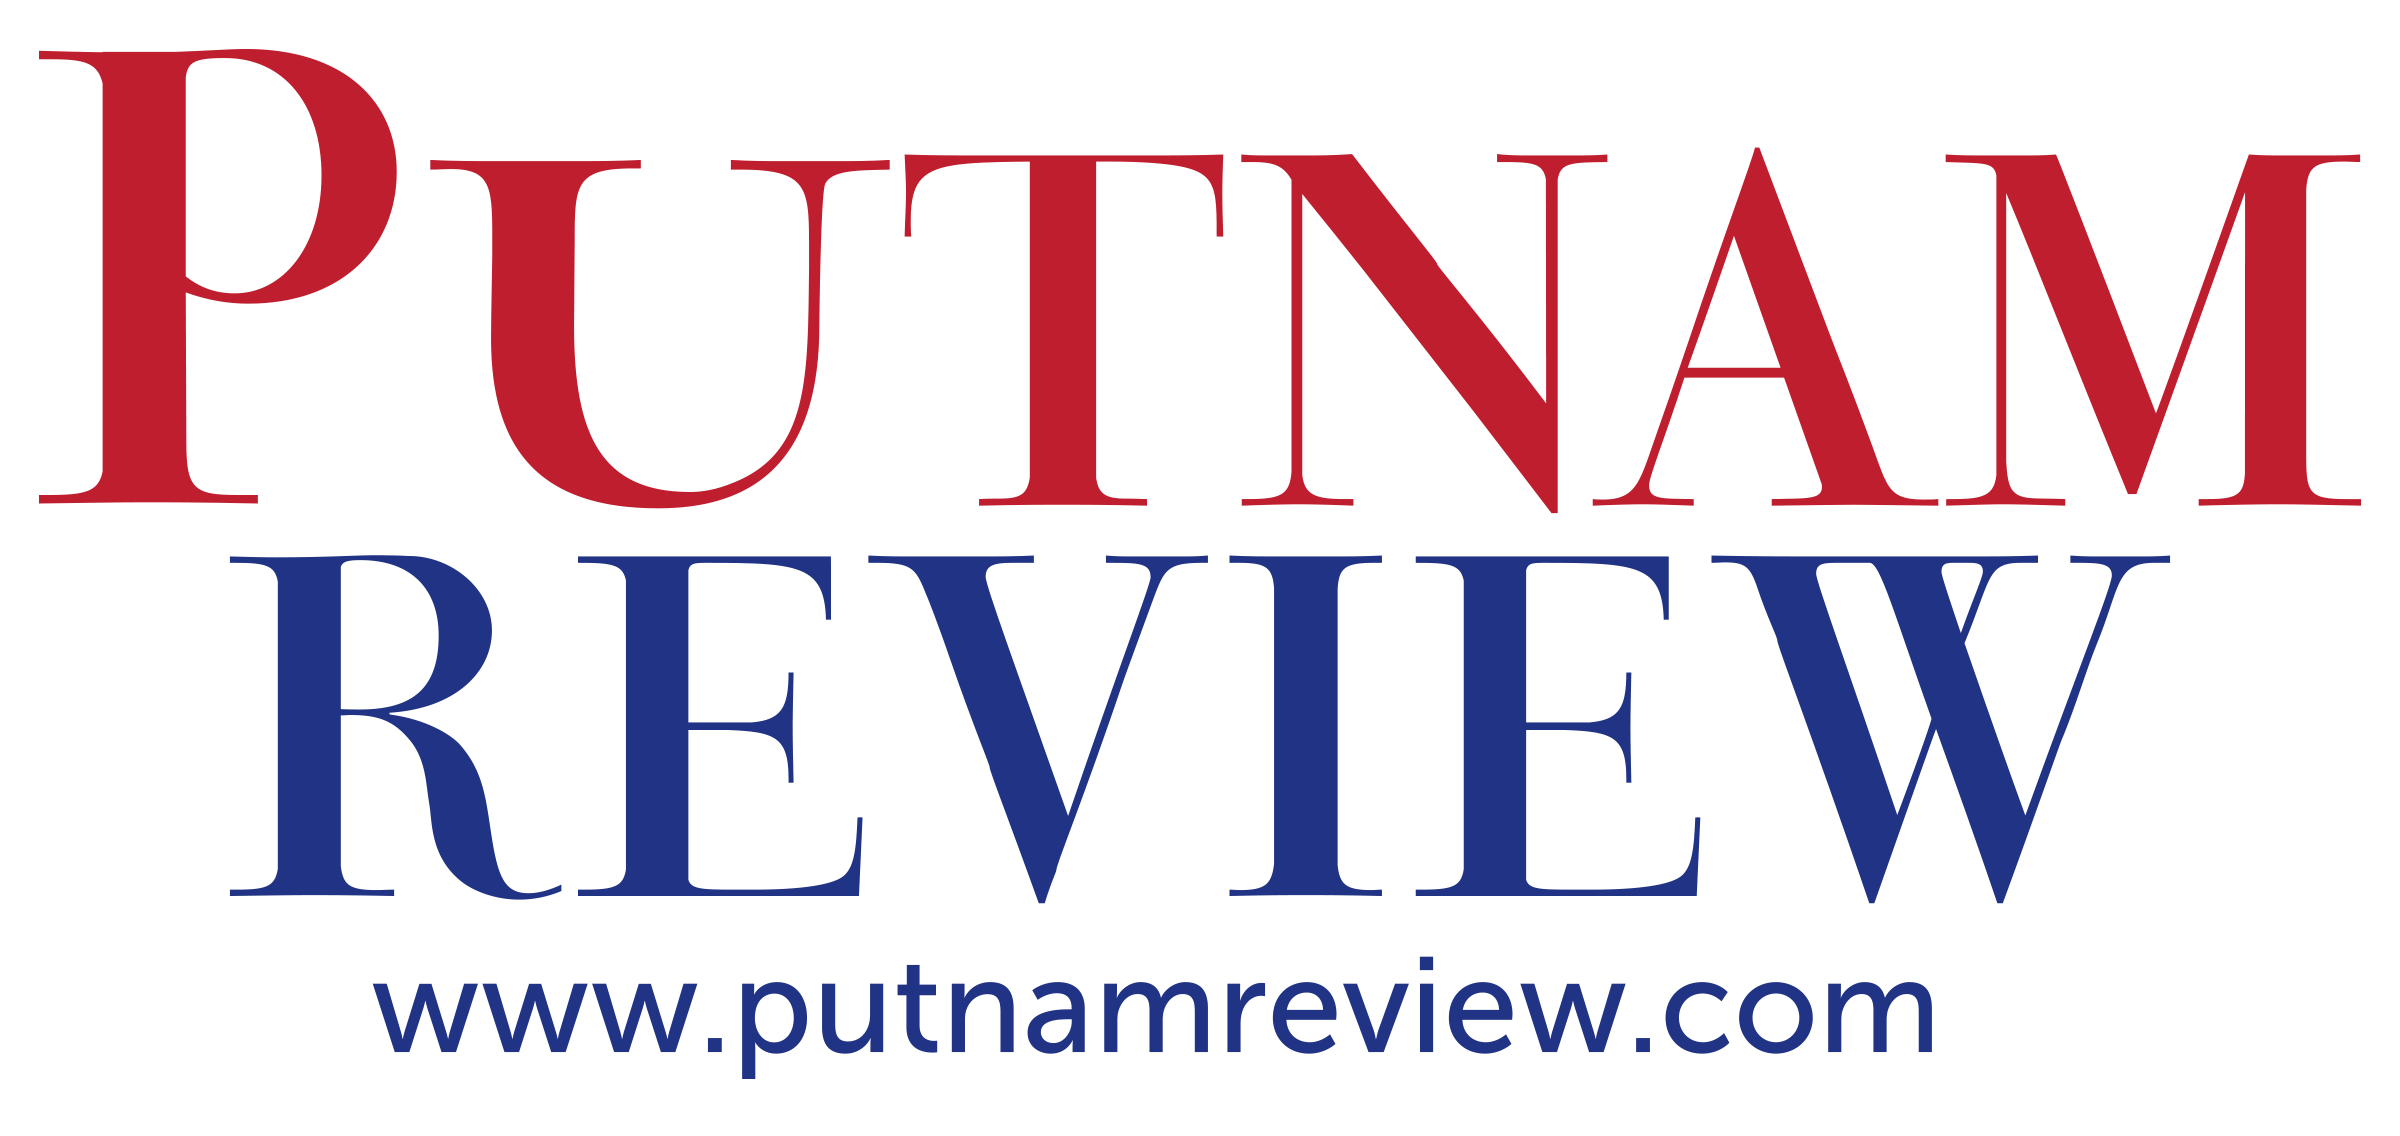 Putnam Review logo